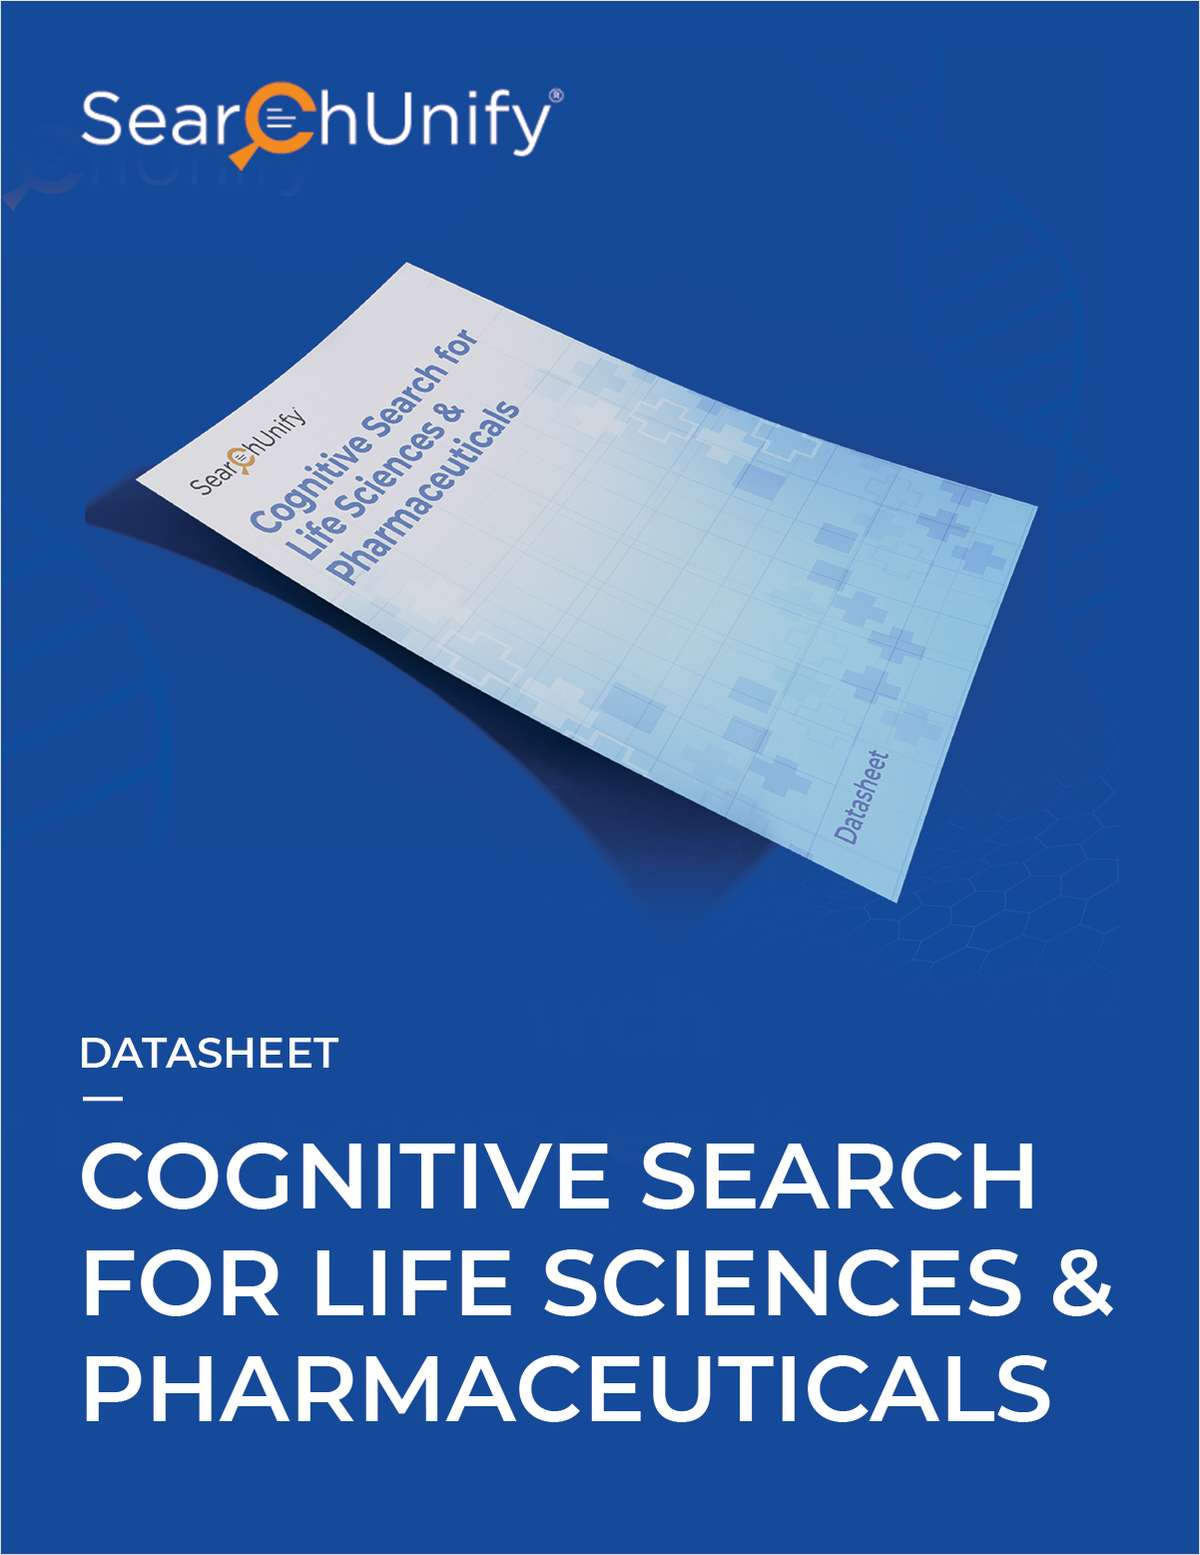 Cognitive Search for Life Sciences & Pharmaceuticals